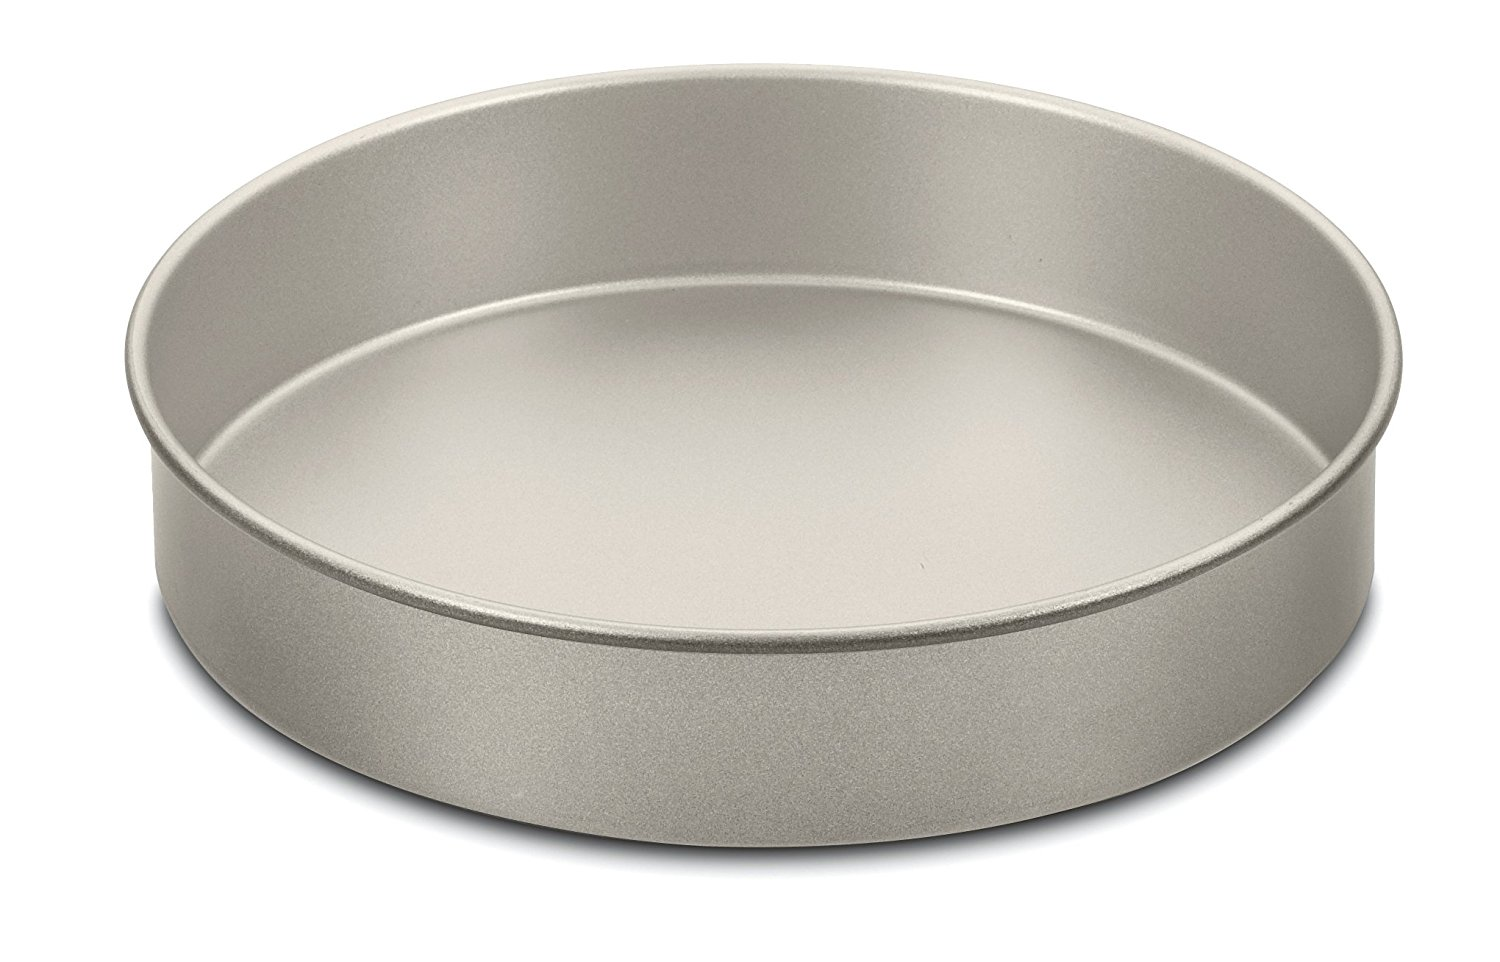 Amazon pluspng.com: Cuisinart AMB-9RCKCH 9-Inch Chefu0027s Classic Nonstick Bakeware  Round Cake Pan, Champagne: Kitchen u0026 Dining - Cake Pan PNG